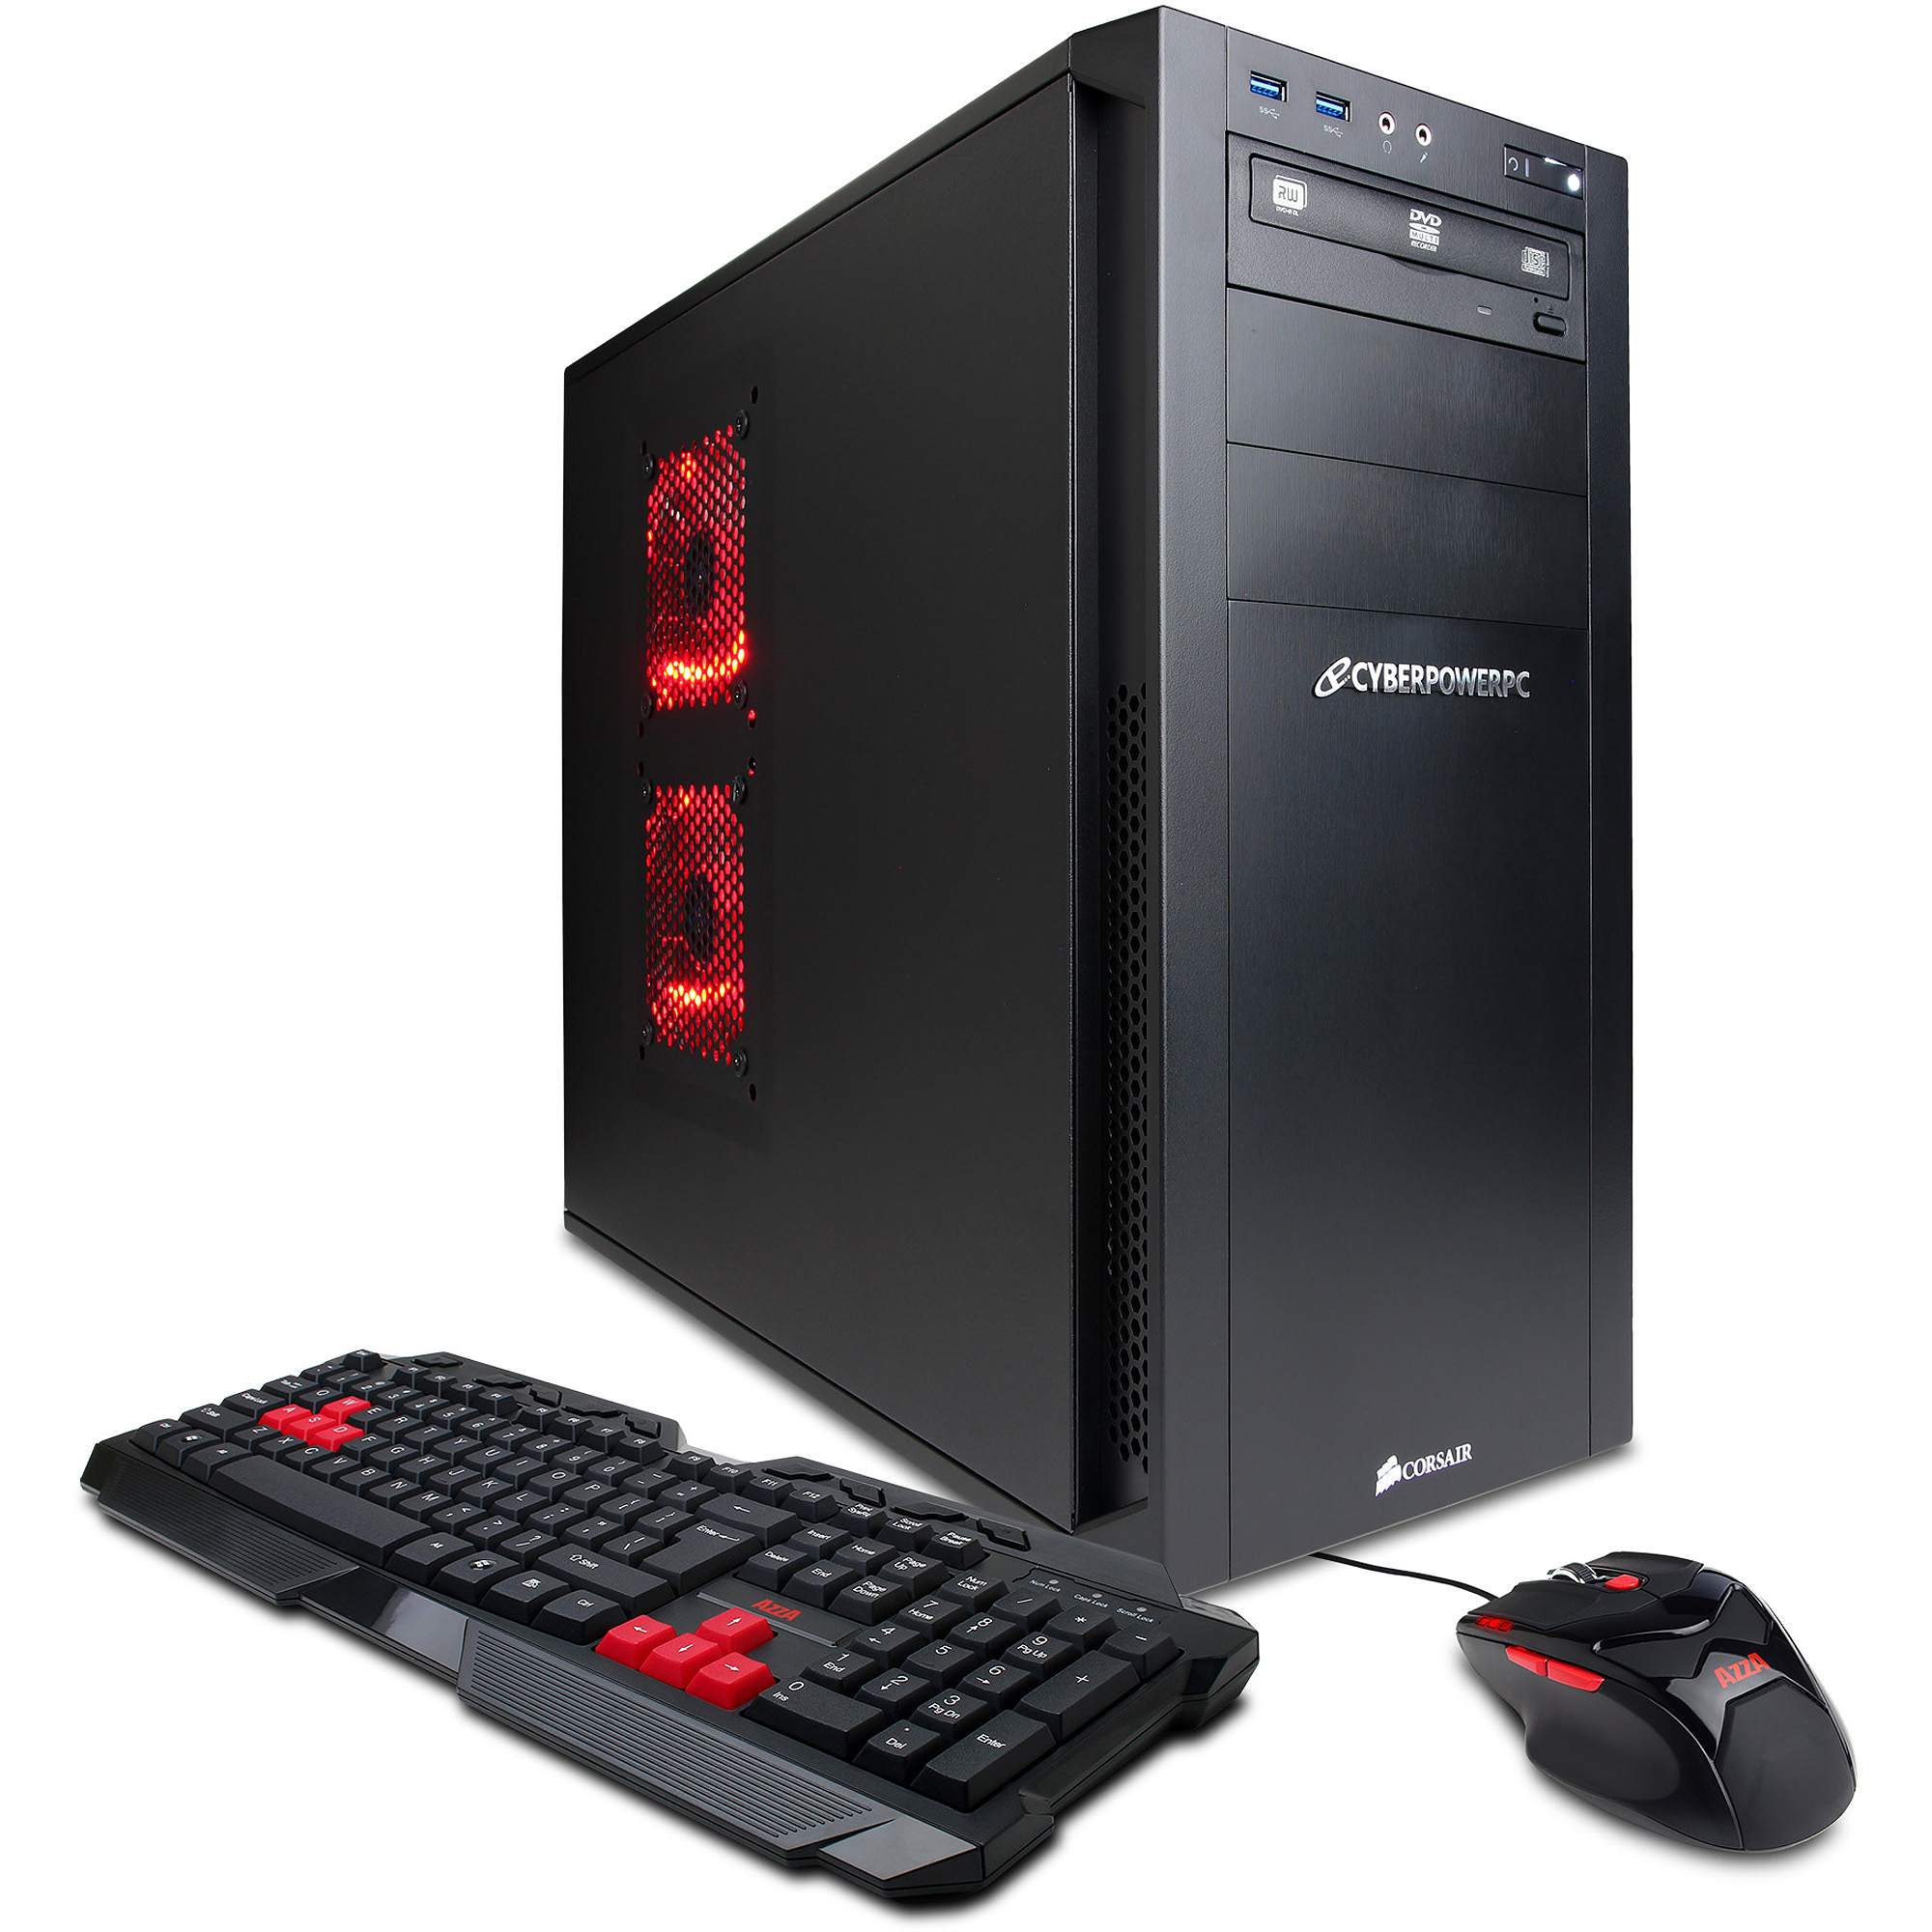 CyberPowerPC Black Gamer Xtreme SRLC200 Desktop PC with Intel Core i5-4670K Processor, 16GB Memory, 2TB Hard Drive and Windows 8 Operating System (Monitor Not Included)